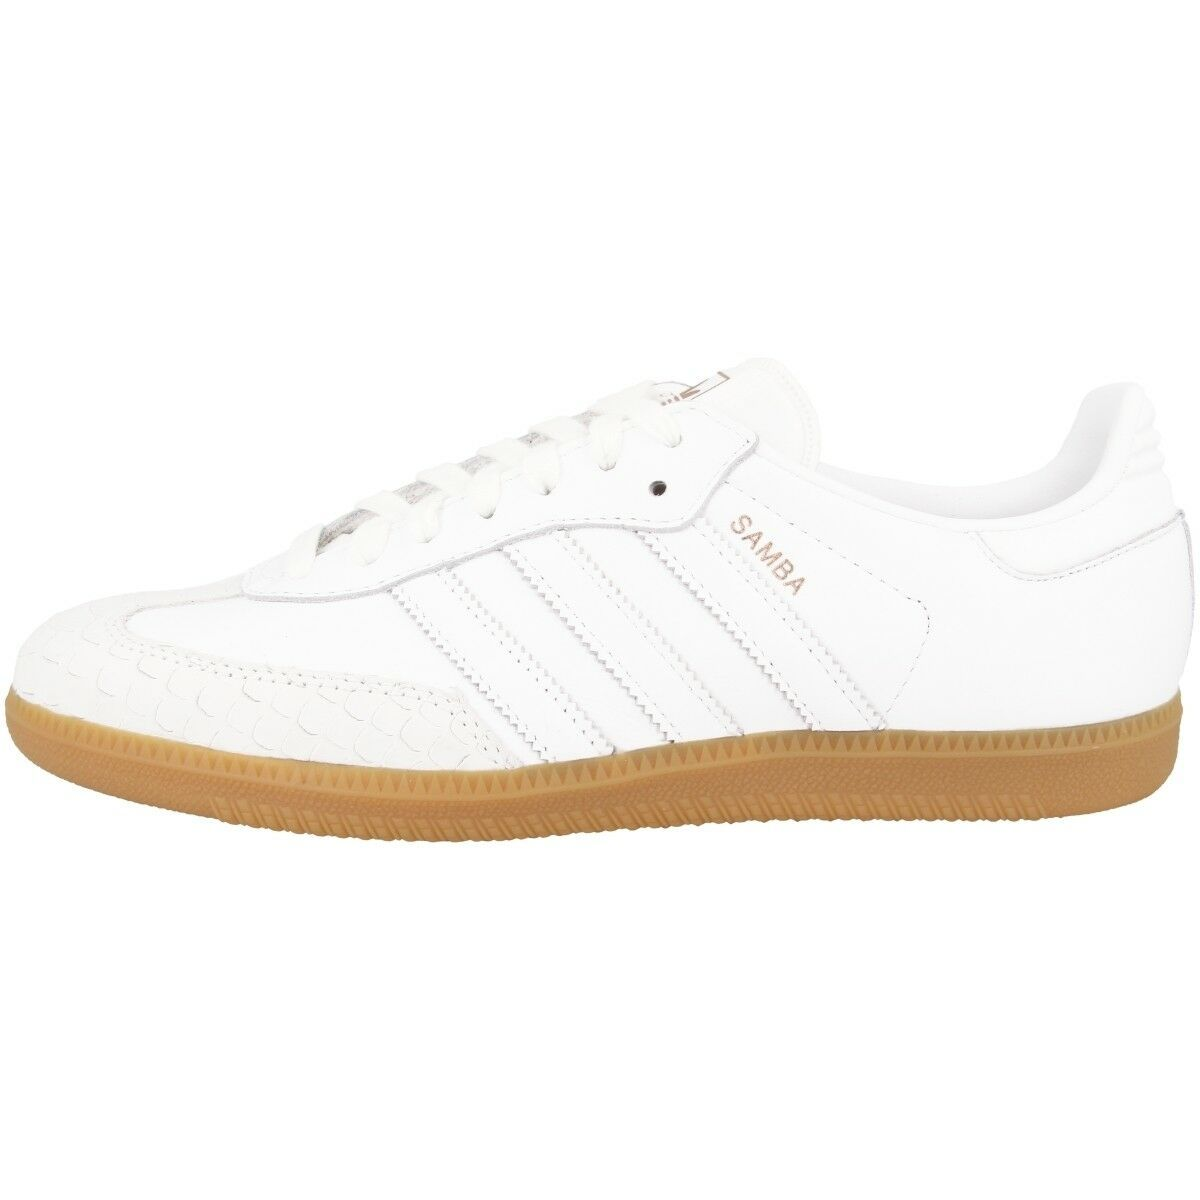 adidas donna sneakers pelle